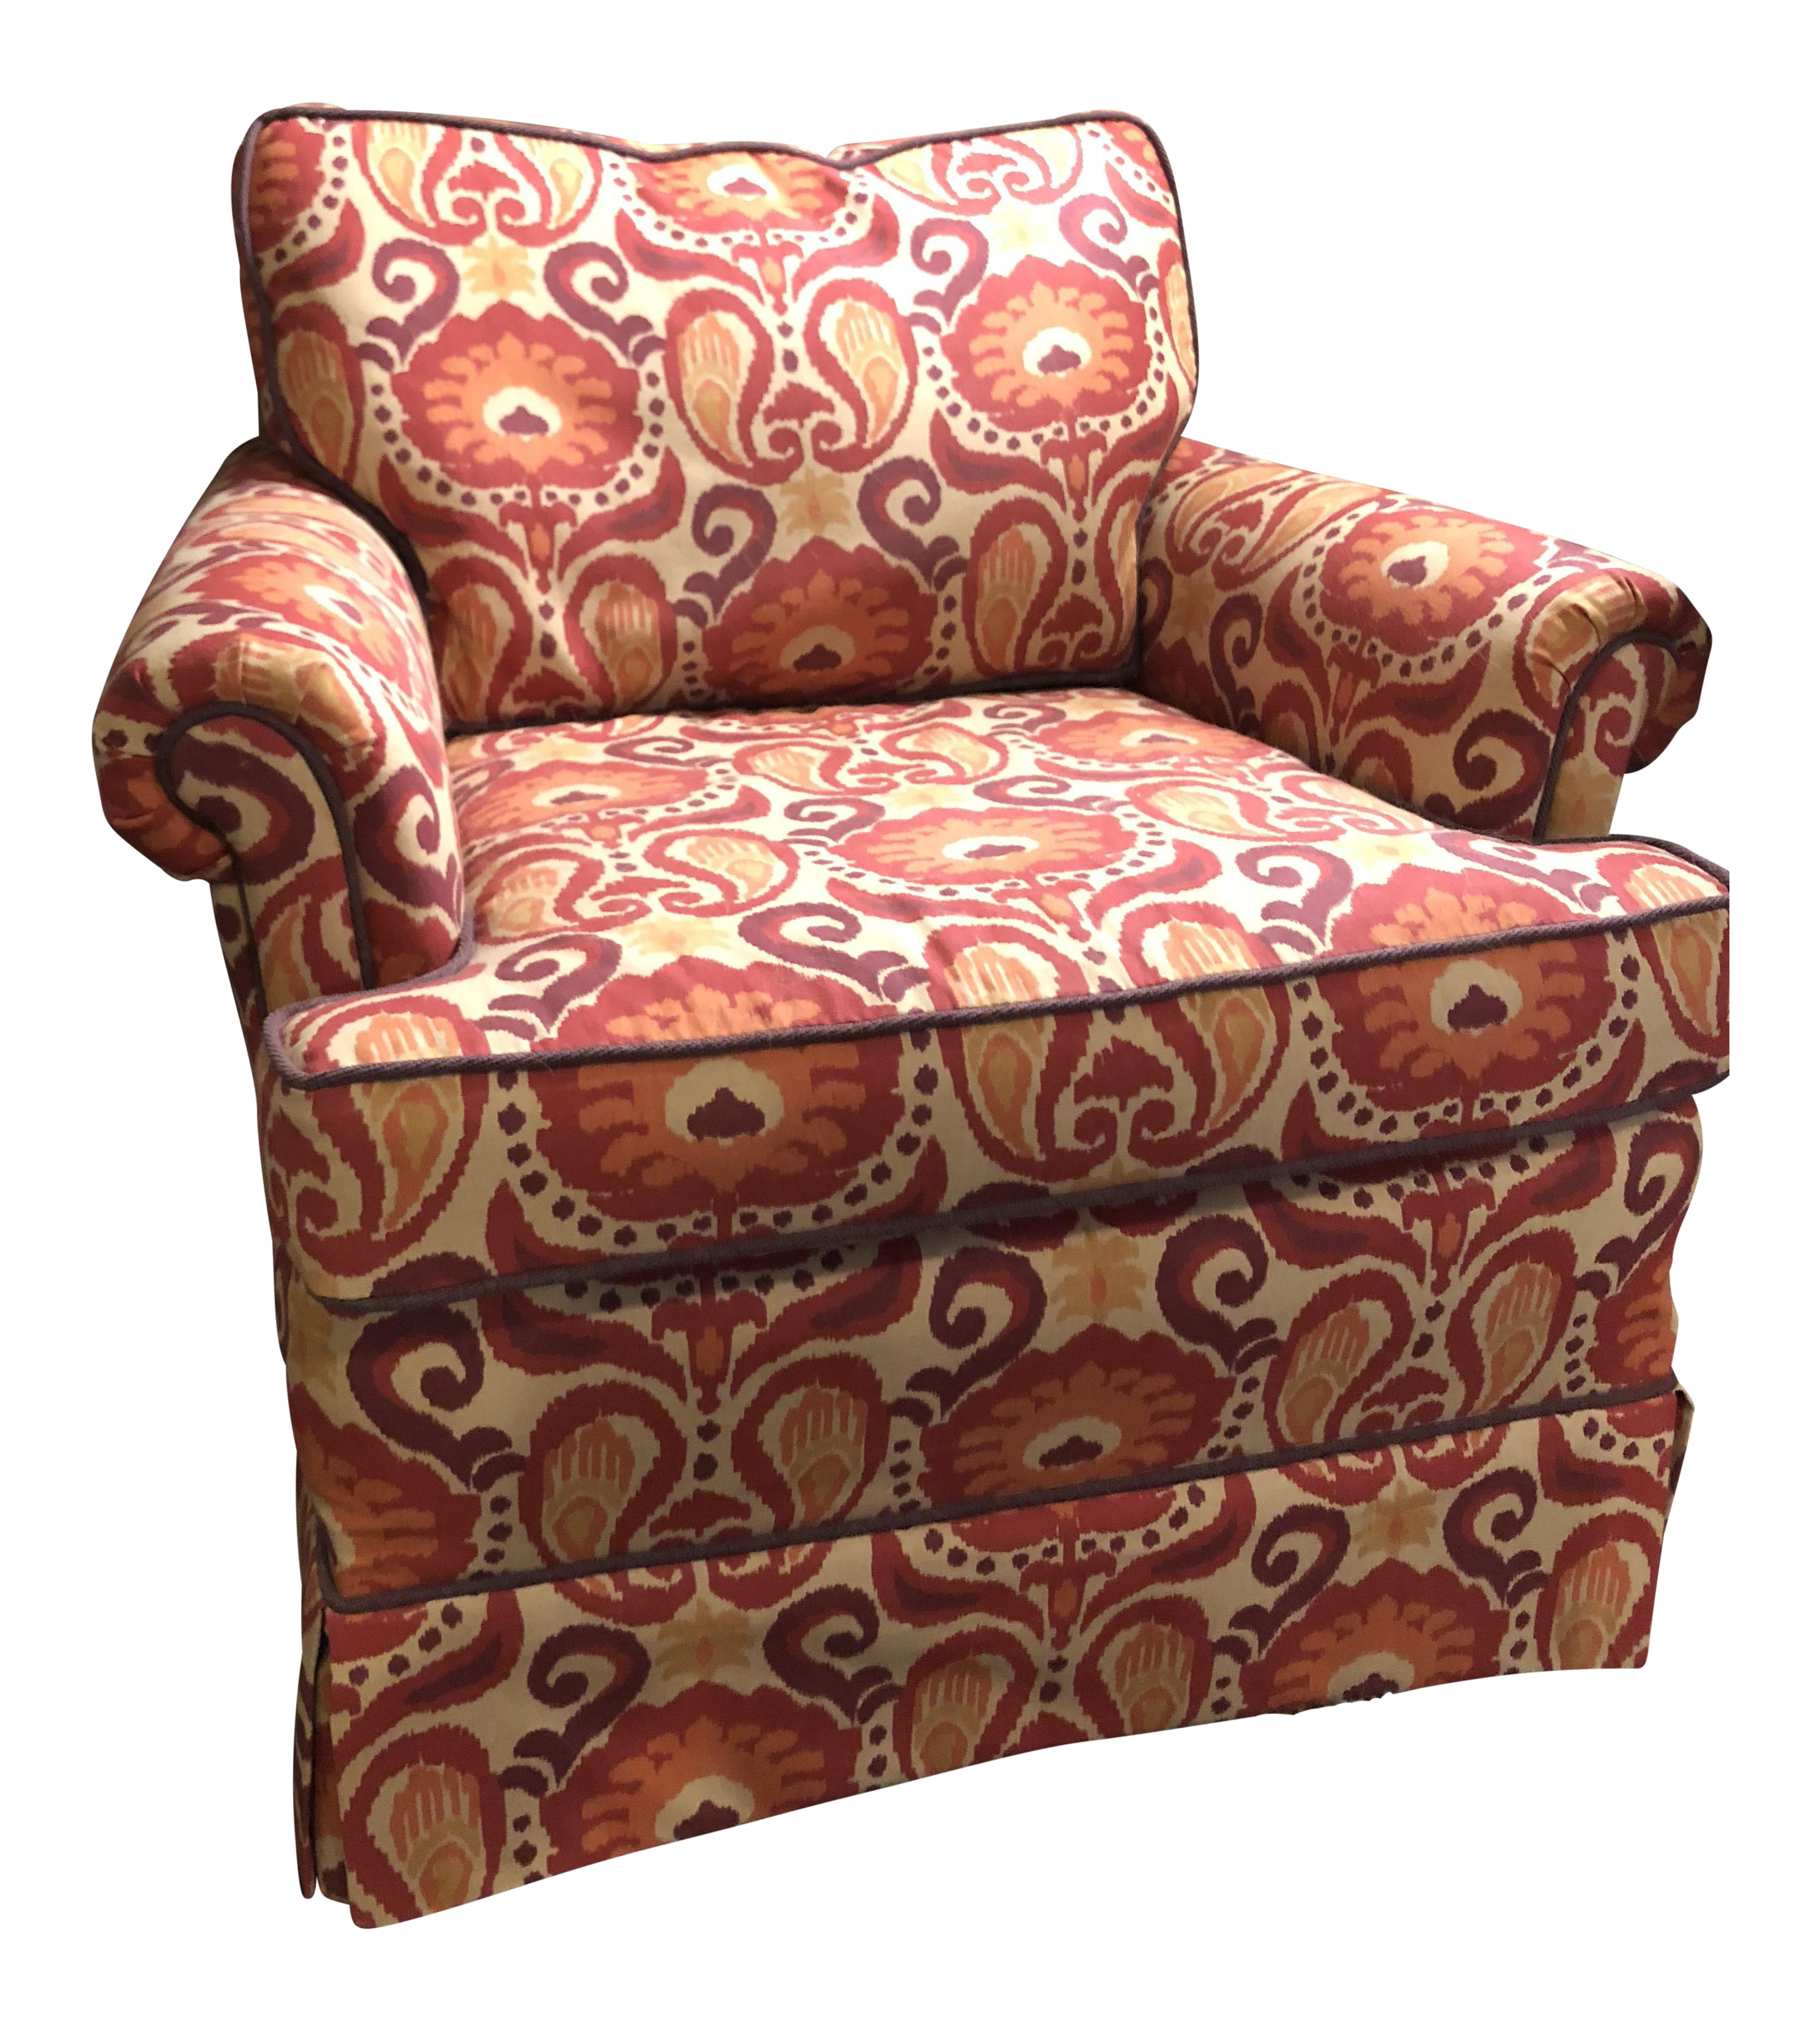 Red orange upholstered club chair chairish for Red and white upholstered chairs